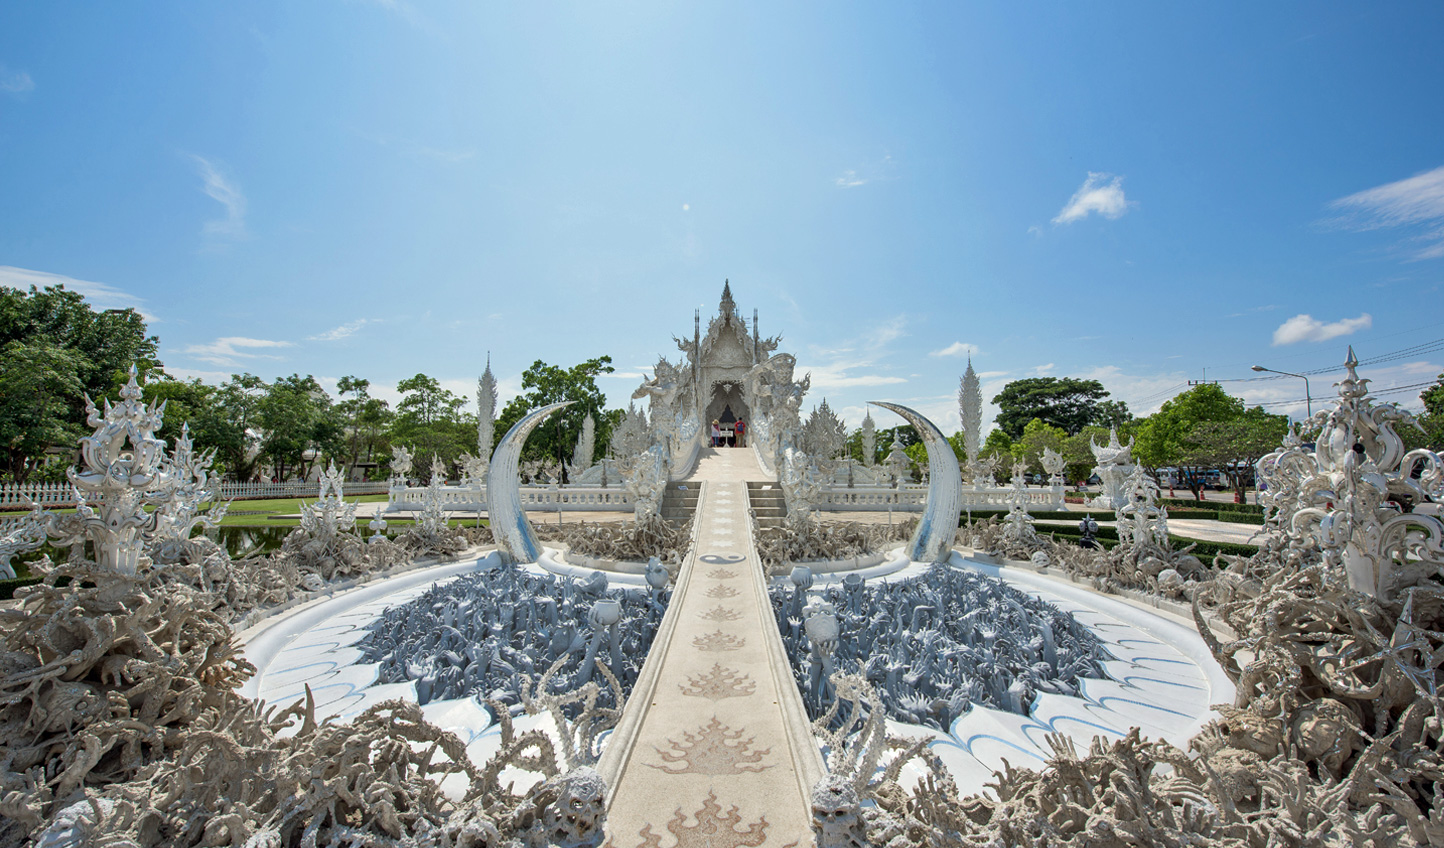 Discover the culture and history of Chang Rai at the White Temple